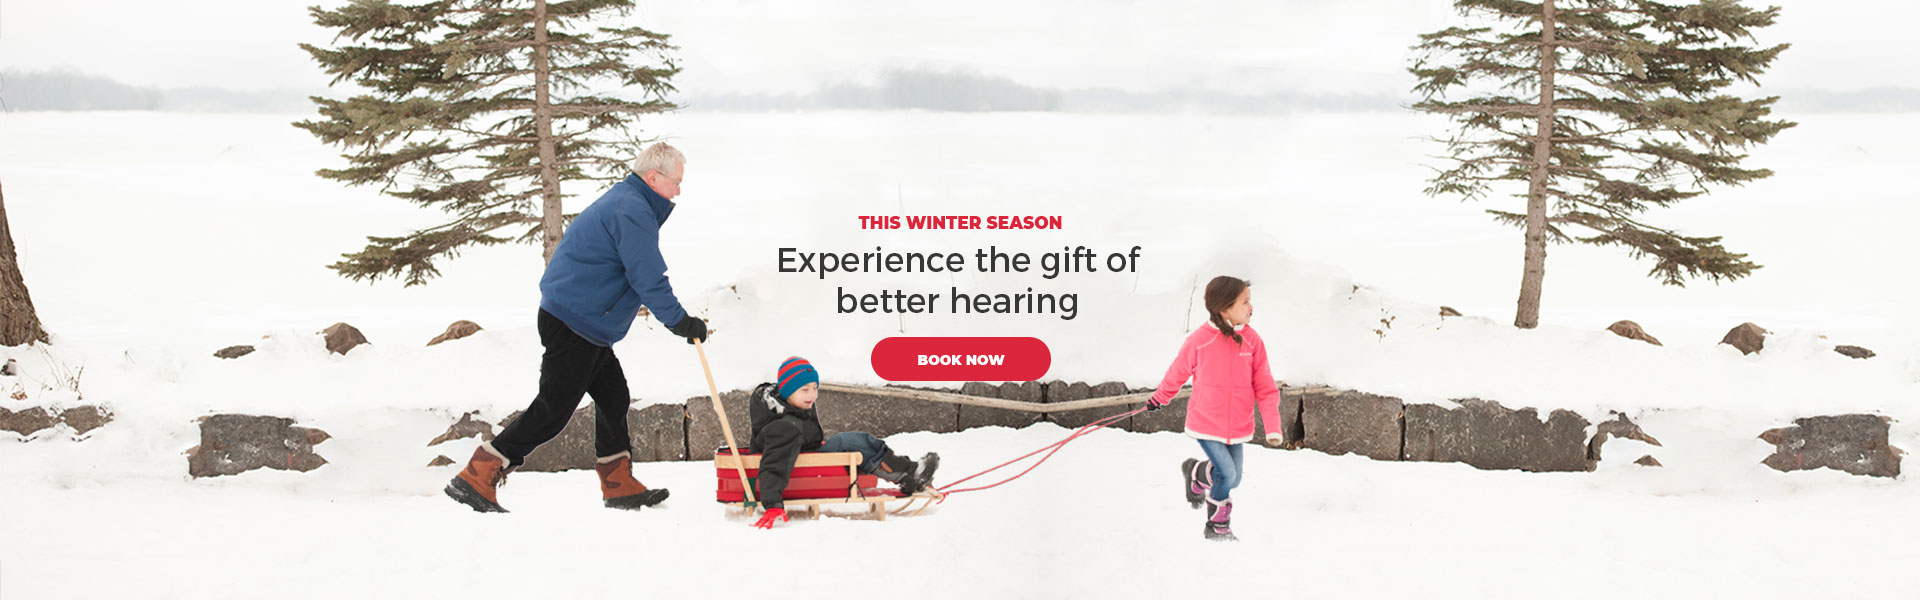 Winter Banner - Nardelli Audiology